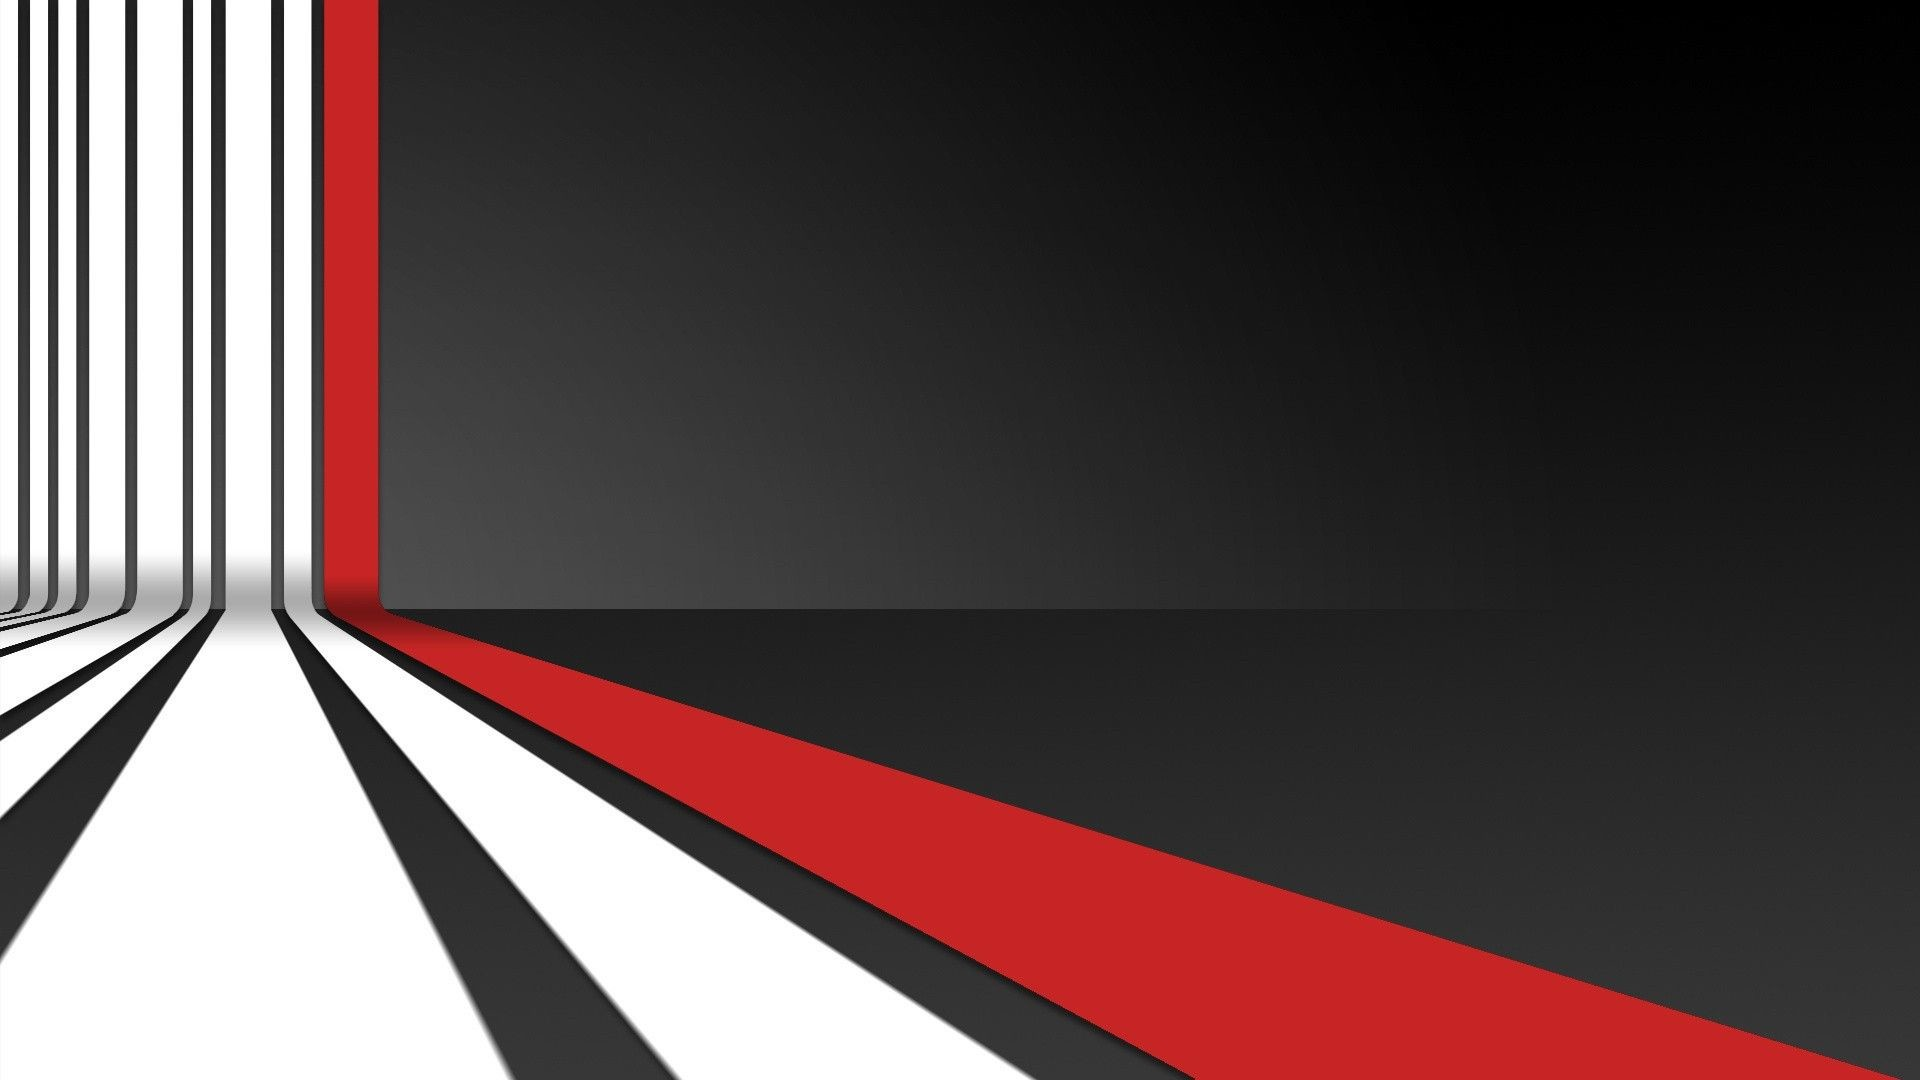 Black And White Abstract Red Wallpaper 1080P